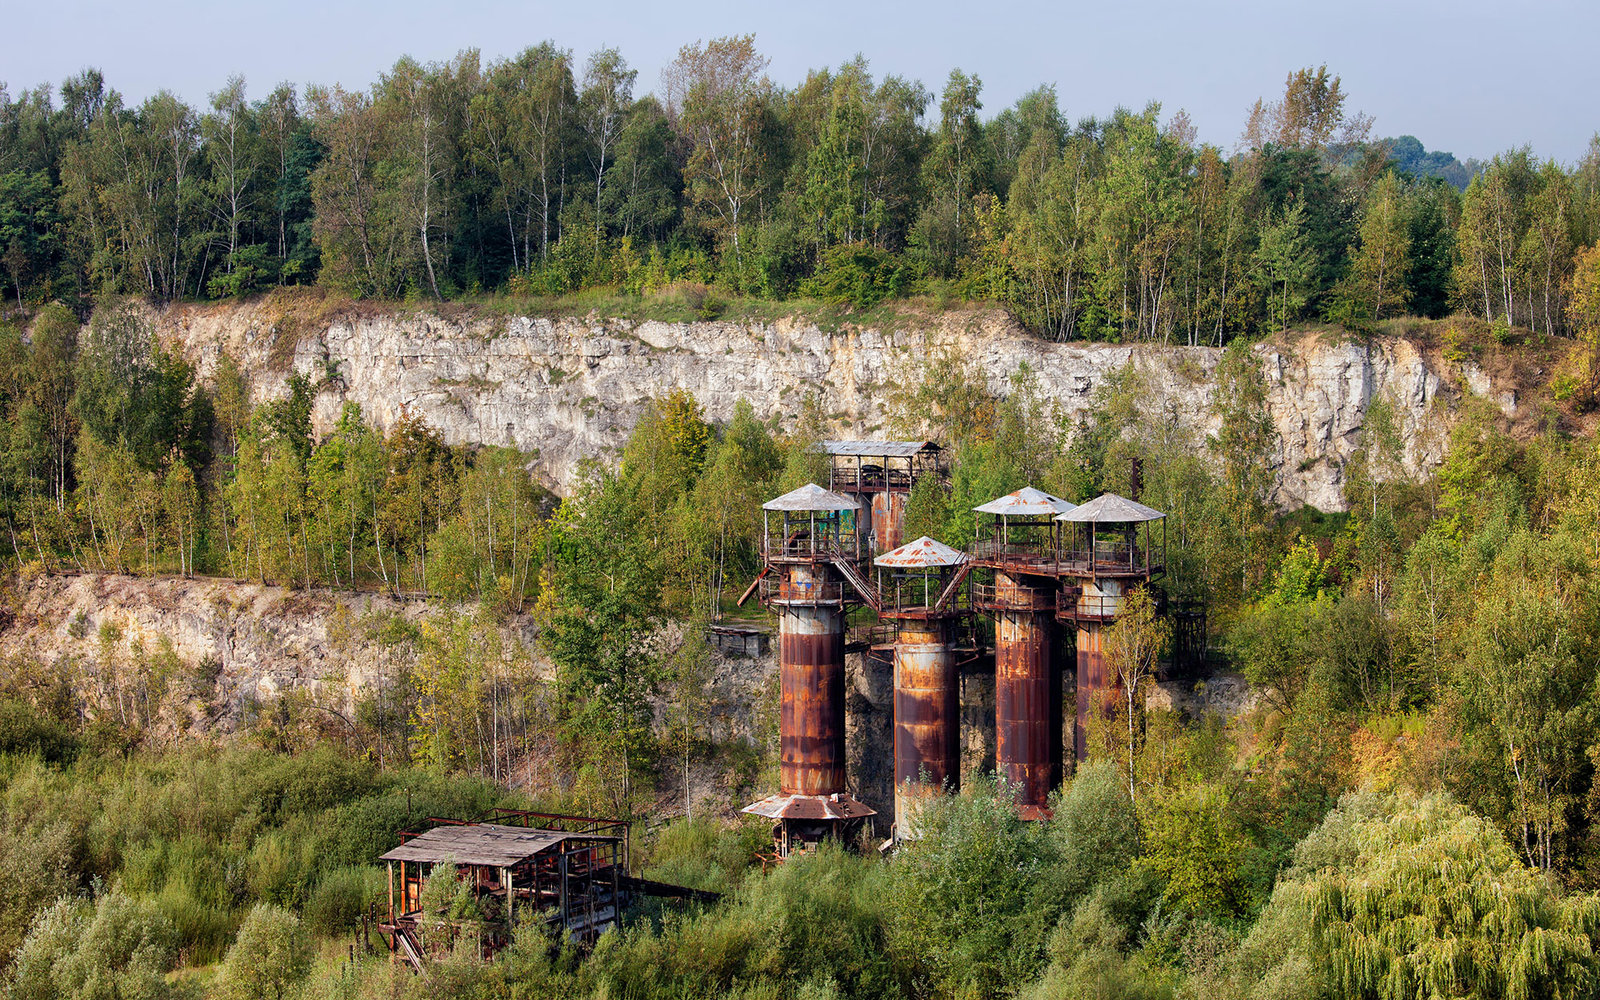 EWA6J3 Abandoned Liban Quarry with Jurassic limestone cliffs and old, rusty industrial buildings in Krakow, Poland.